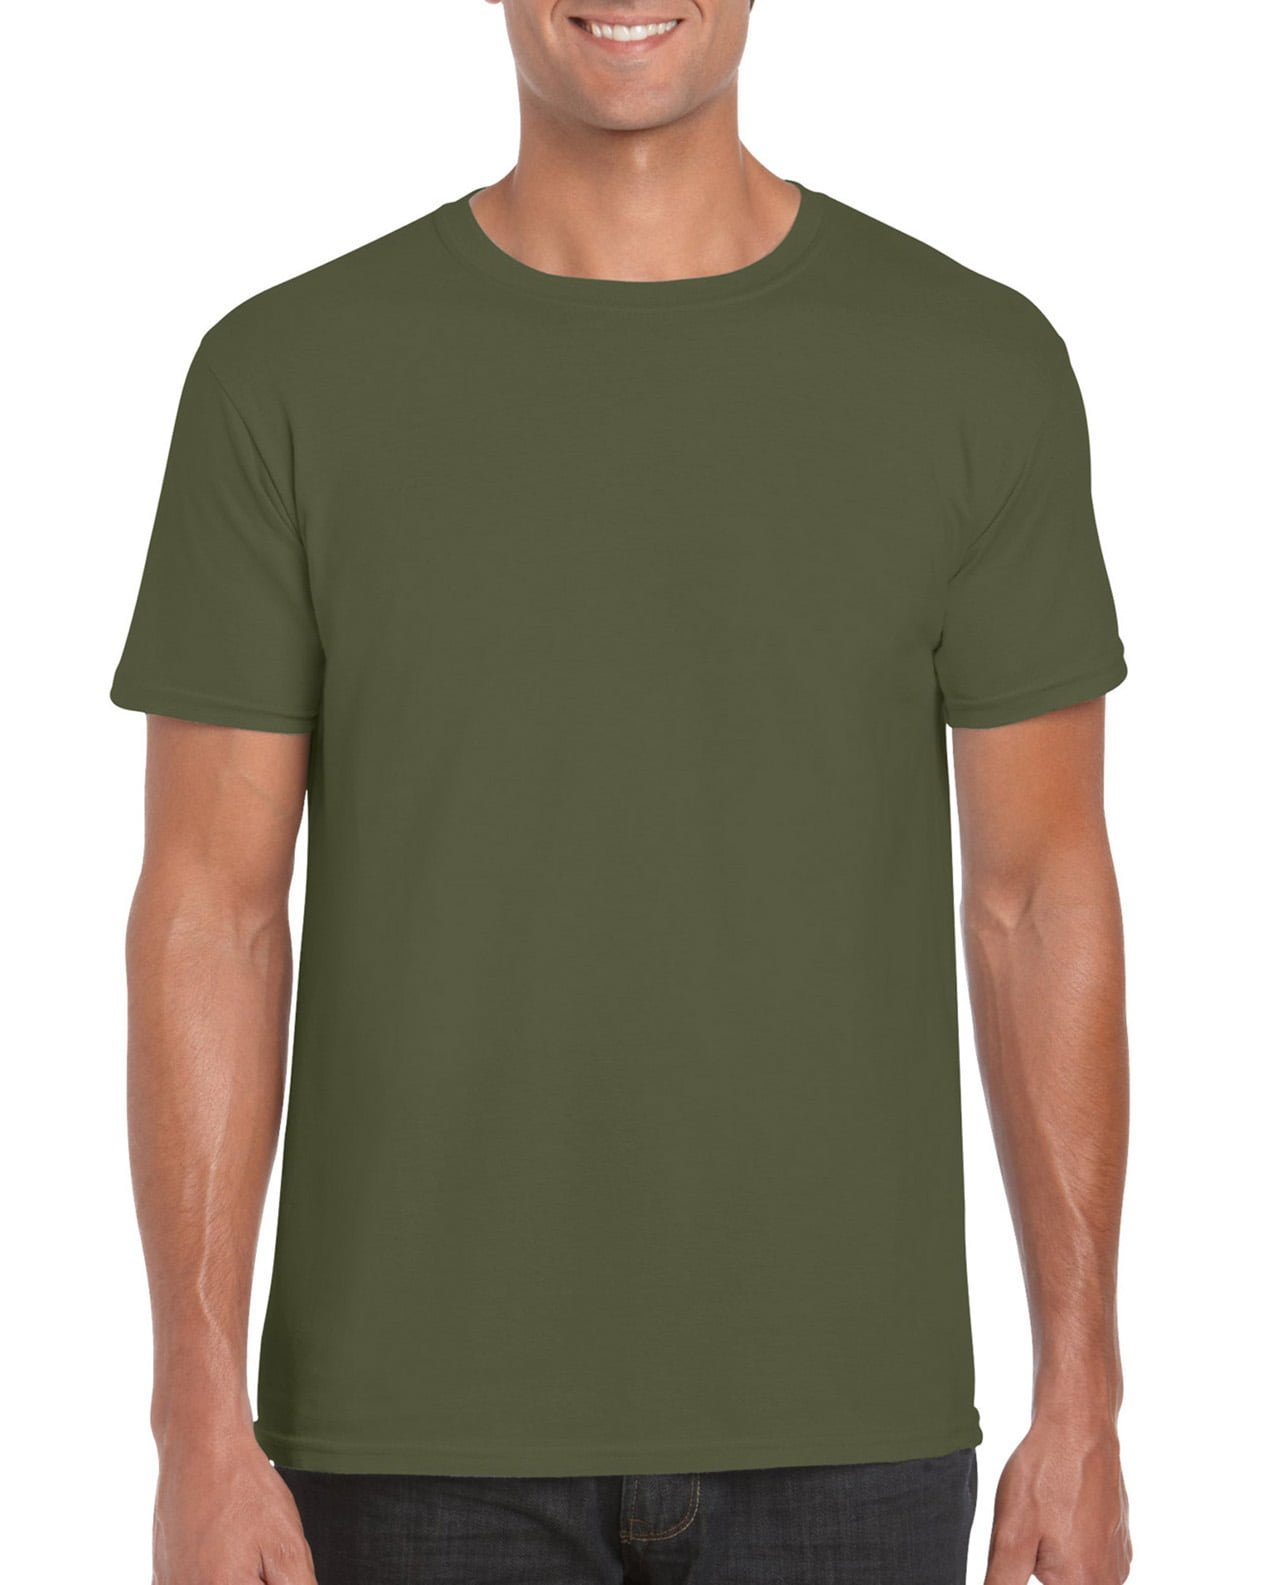 Softstyle Unisex Tee-Military Green